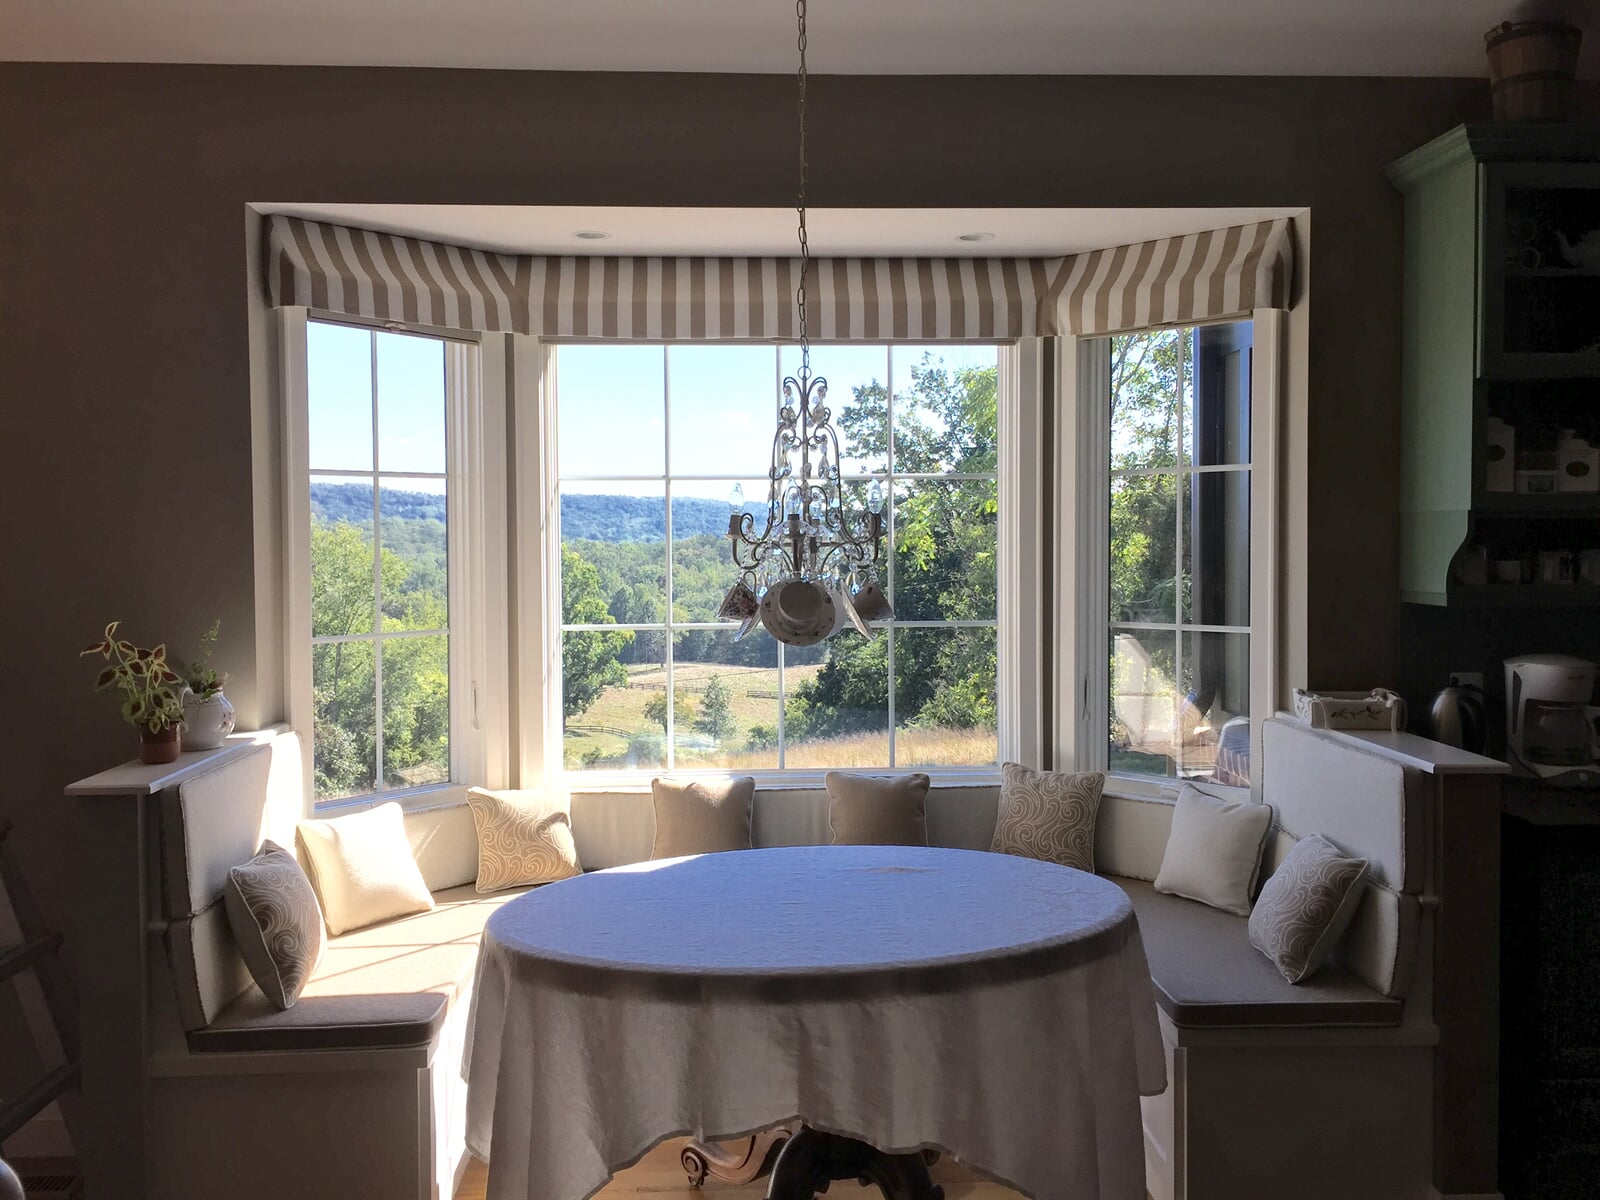 Beautiful custom window treatments in Culpeper, VA from Early's Flooring Specialists & More